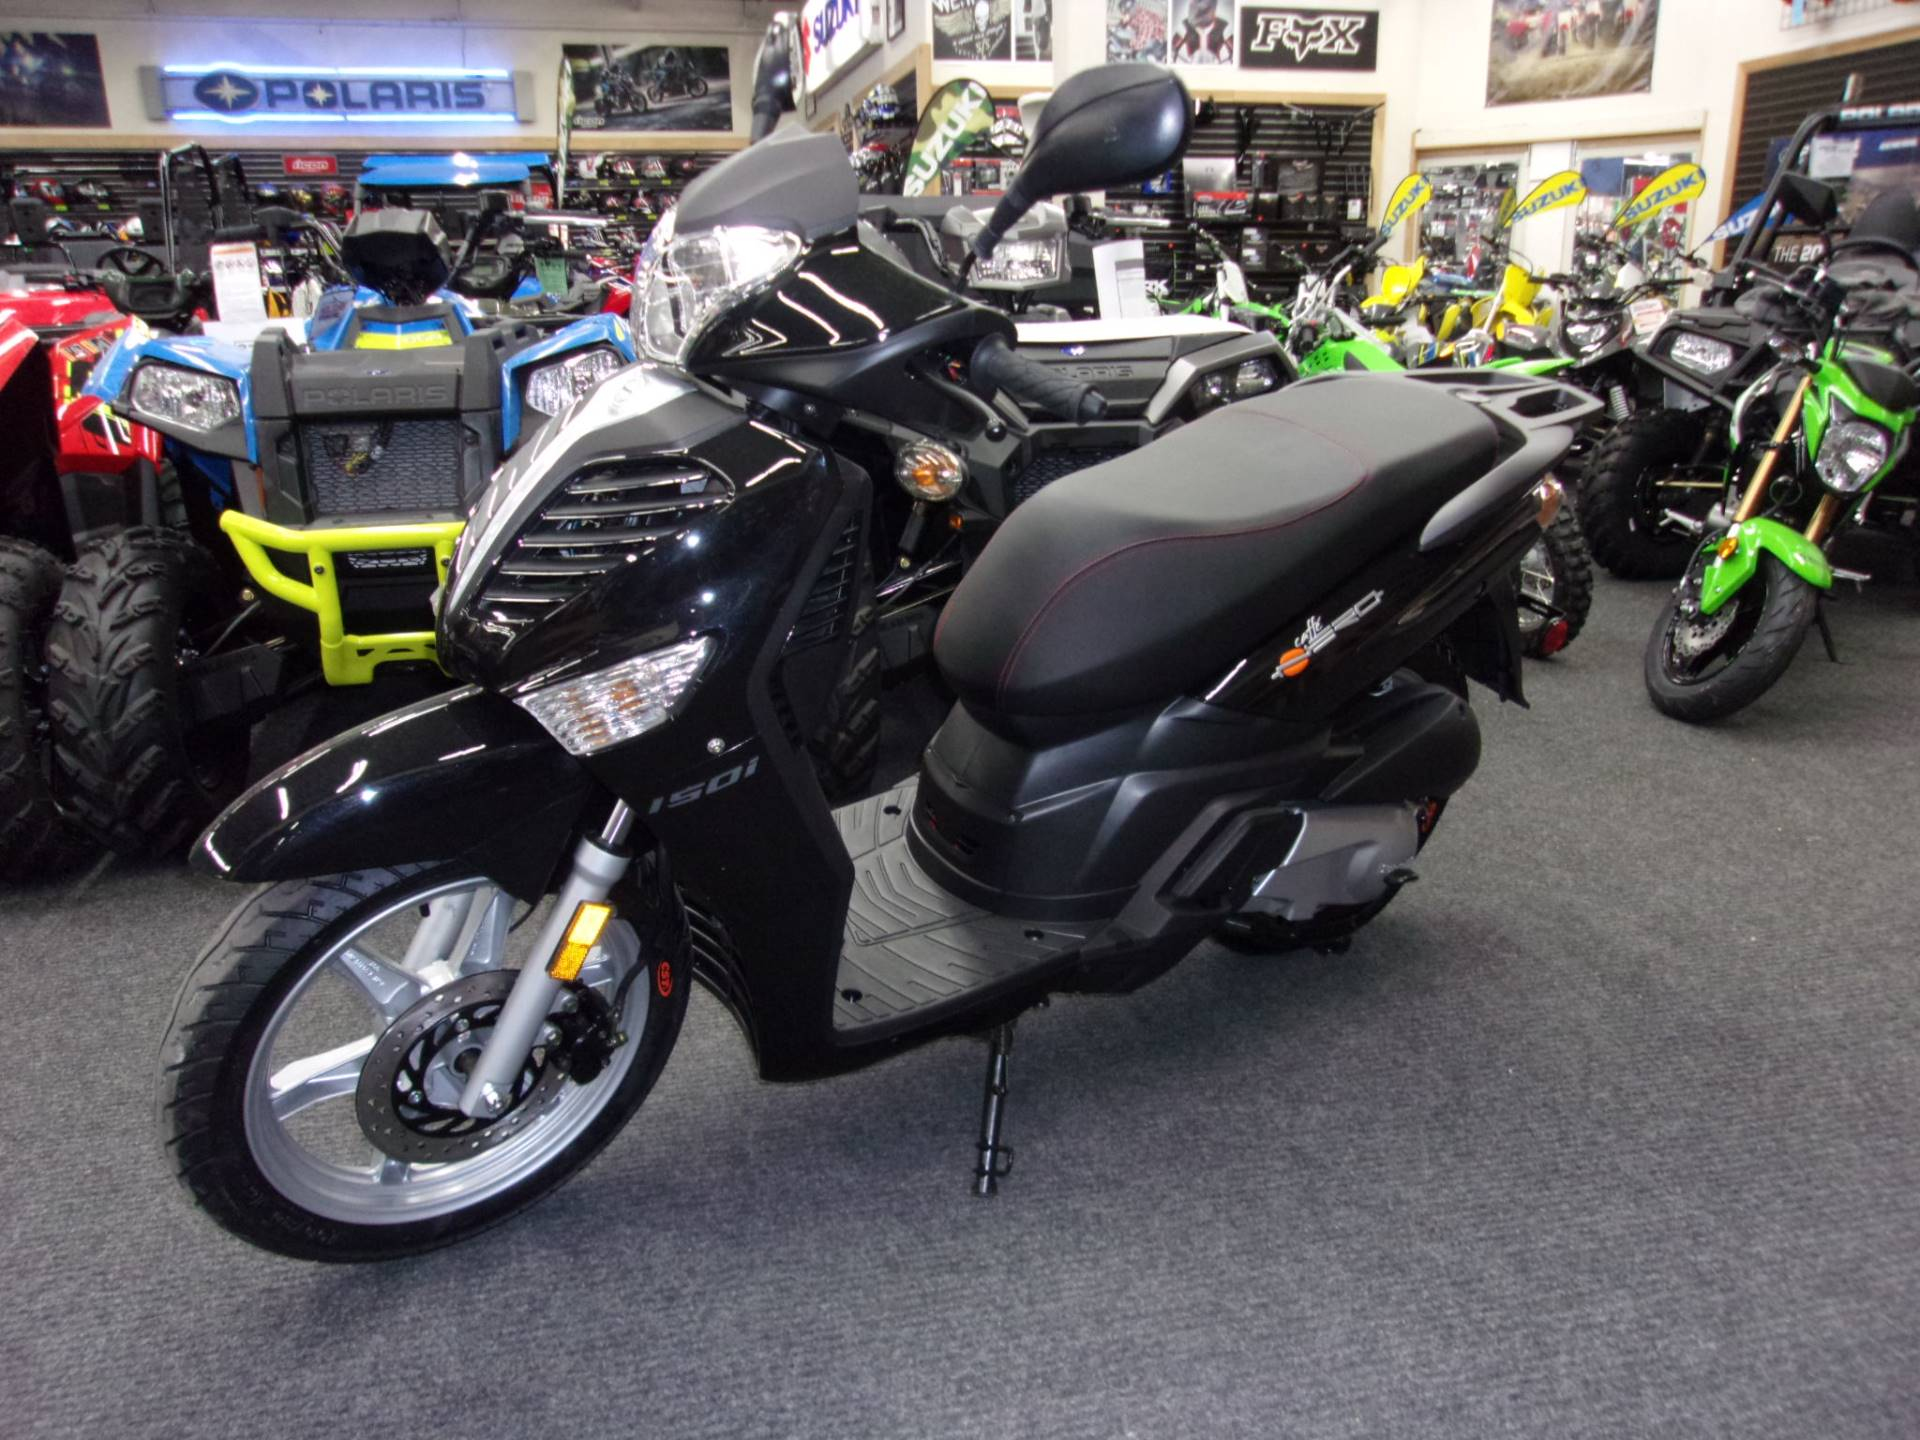 Scooter Benelli 150 – Motociclo Images Ideas